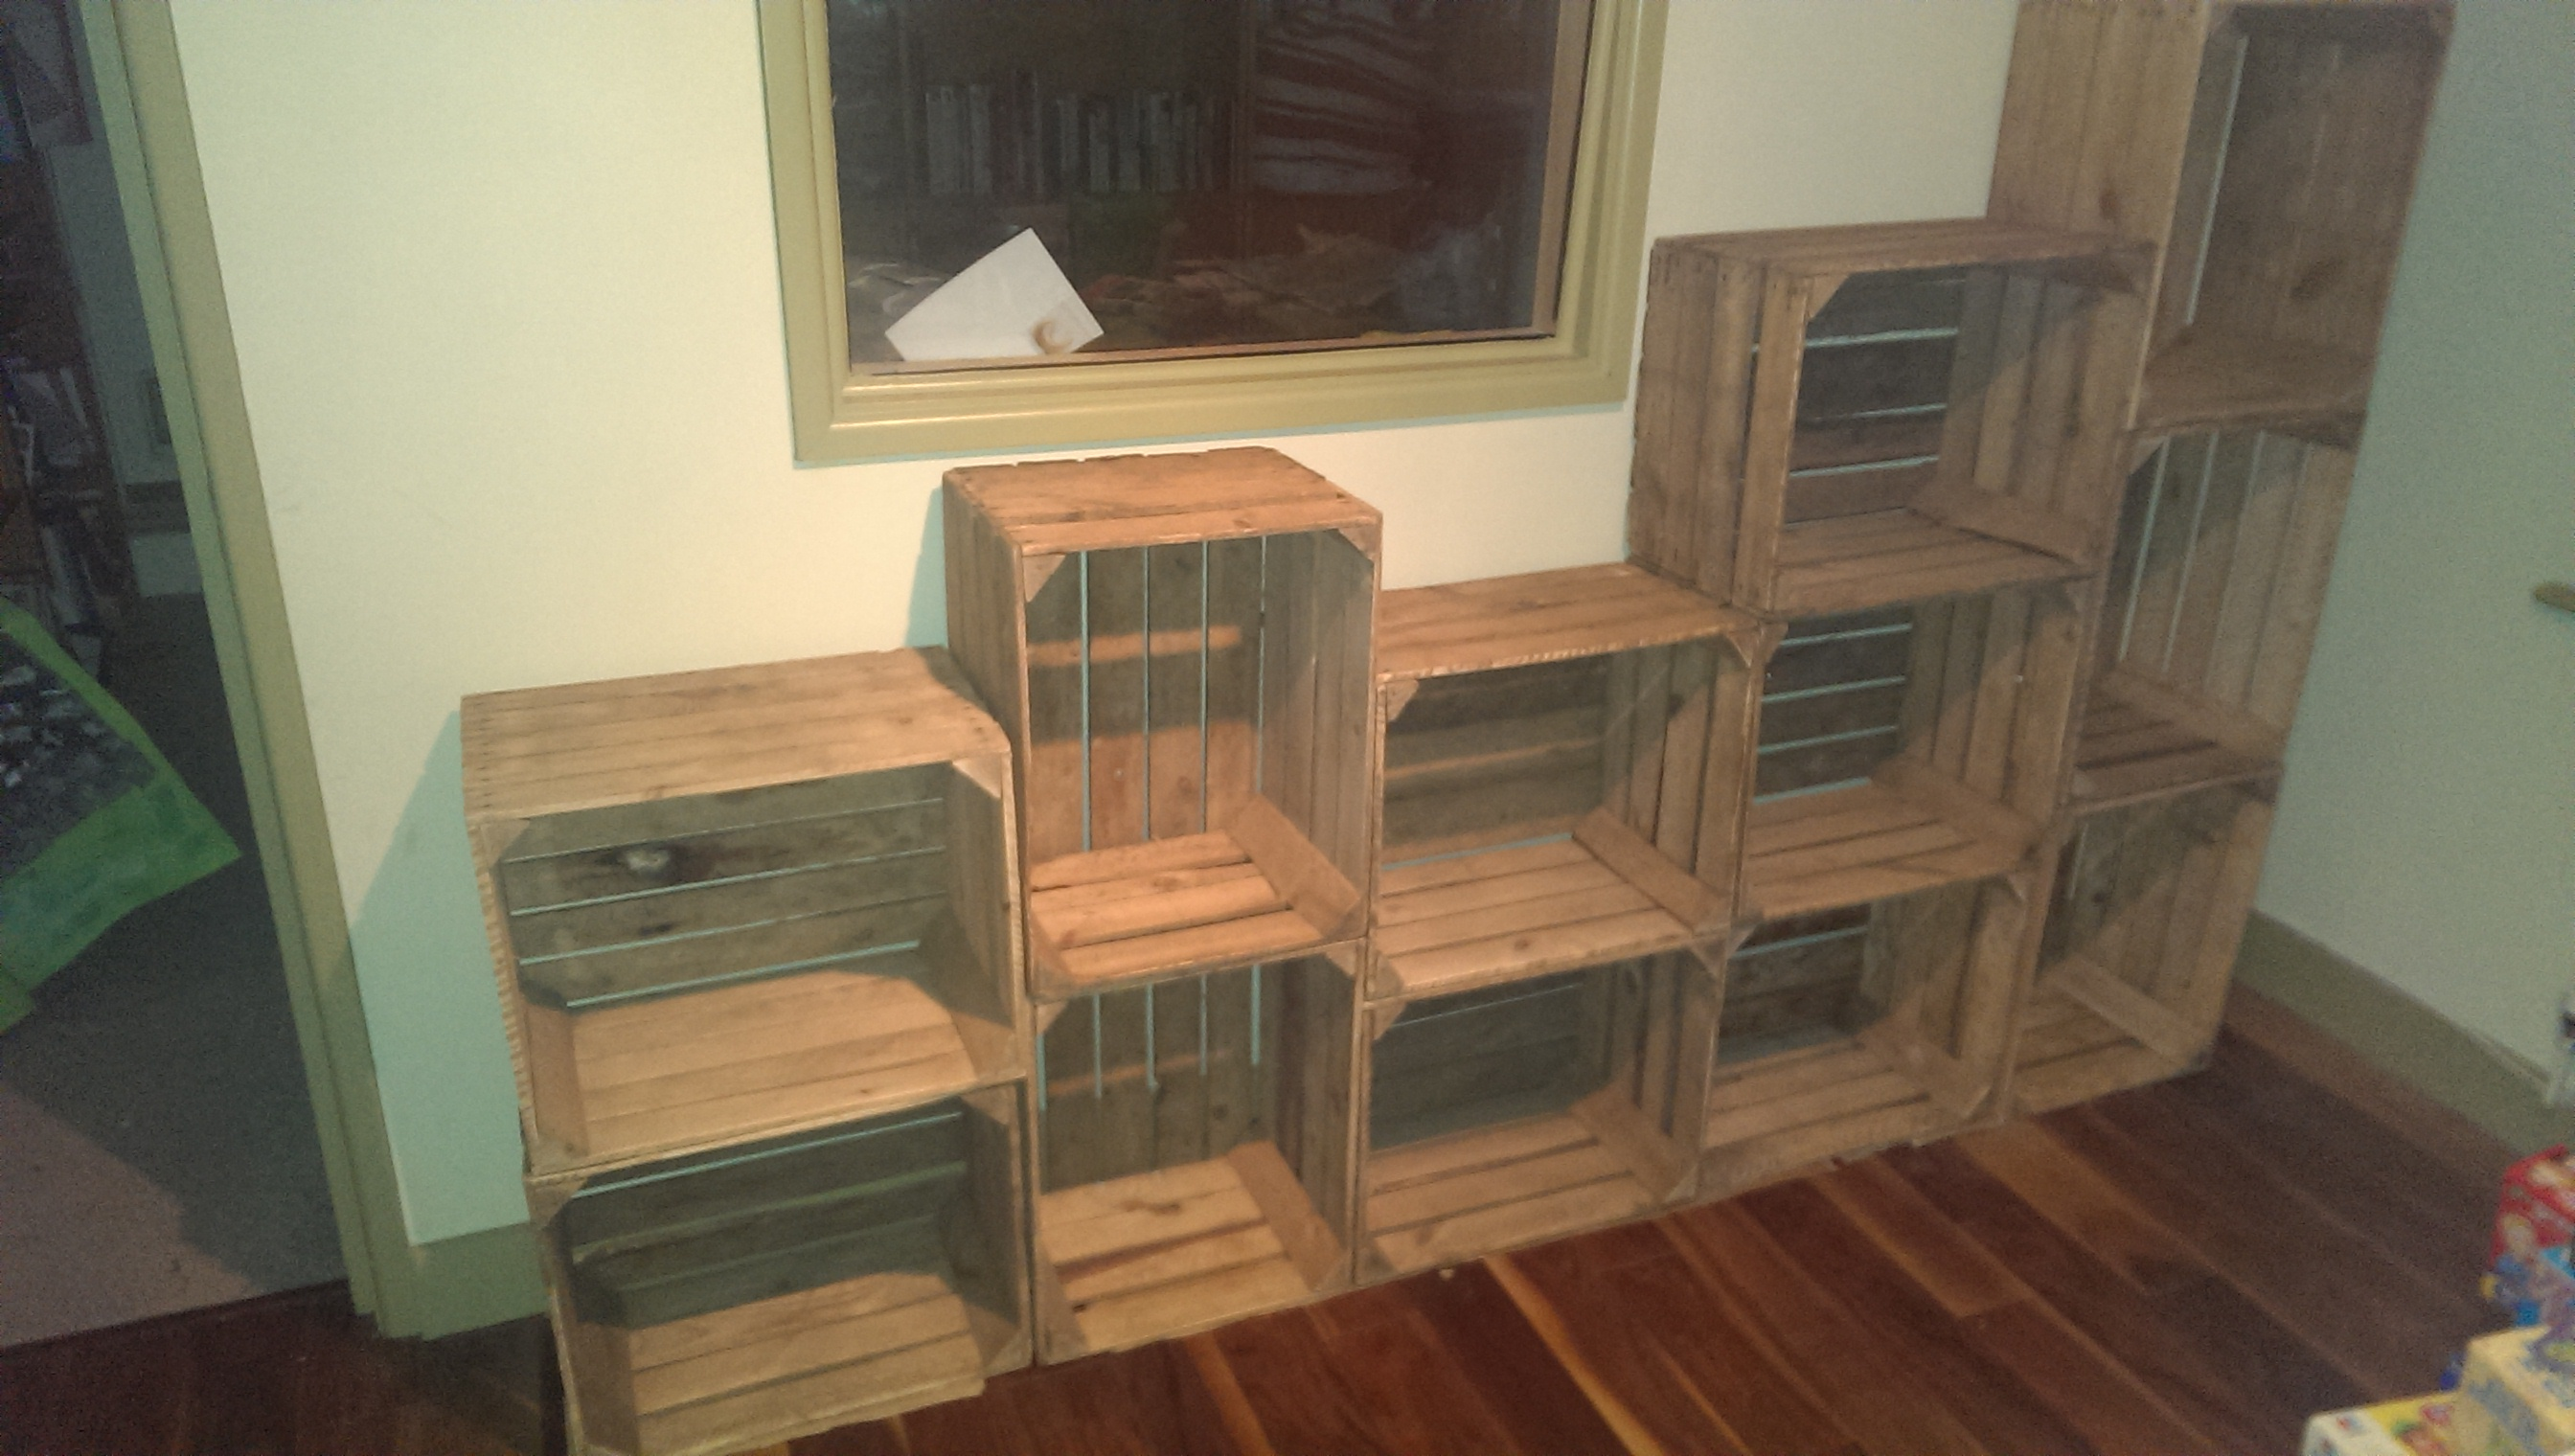 Creating a Crate Shelving Unit…